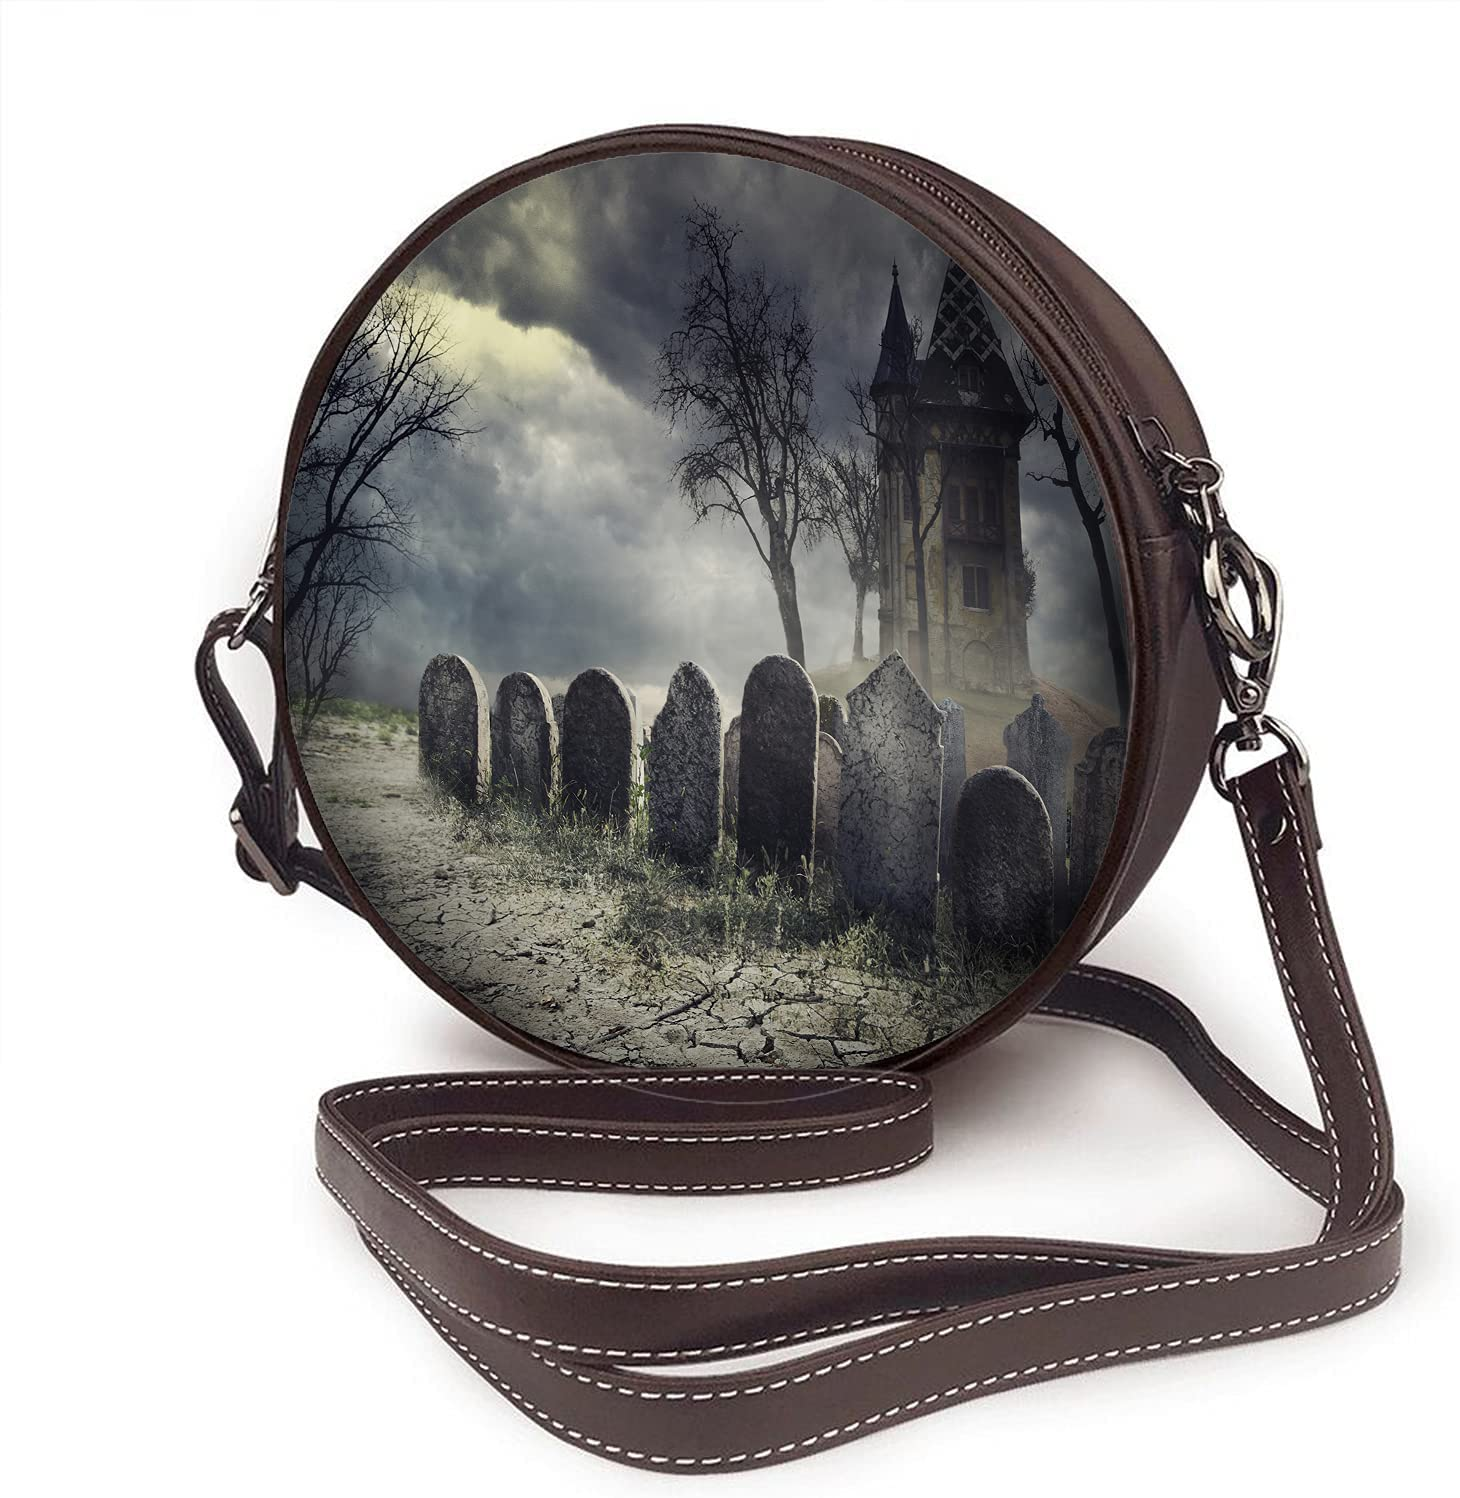 WONDERTIFY Haunted House Shoulder Bags Spooky Graveyard Halloween Scary Party Round Crossbody Bags For Women Microfiber Leather Purse Handbag